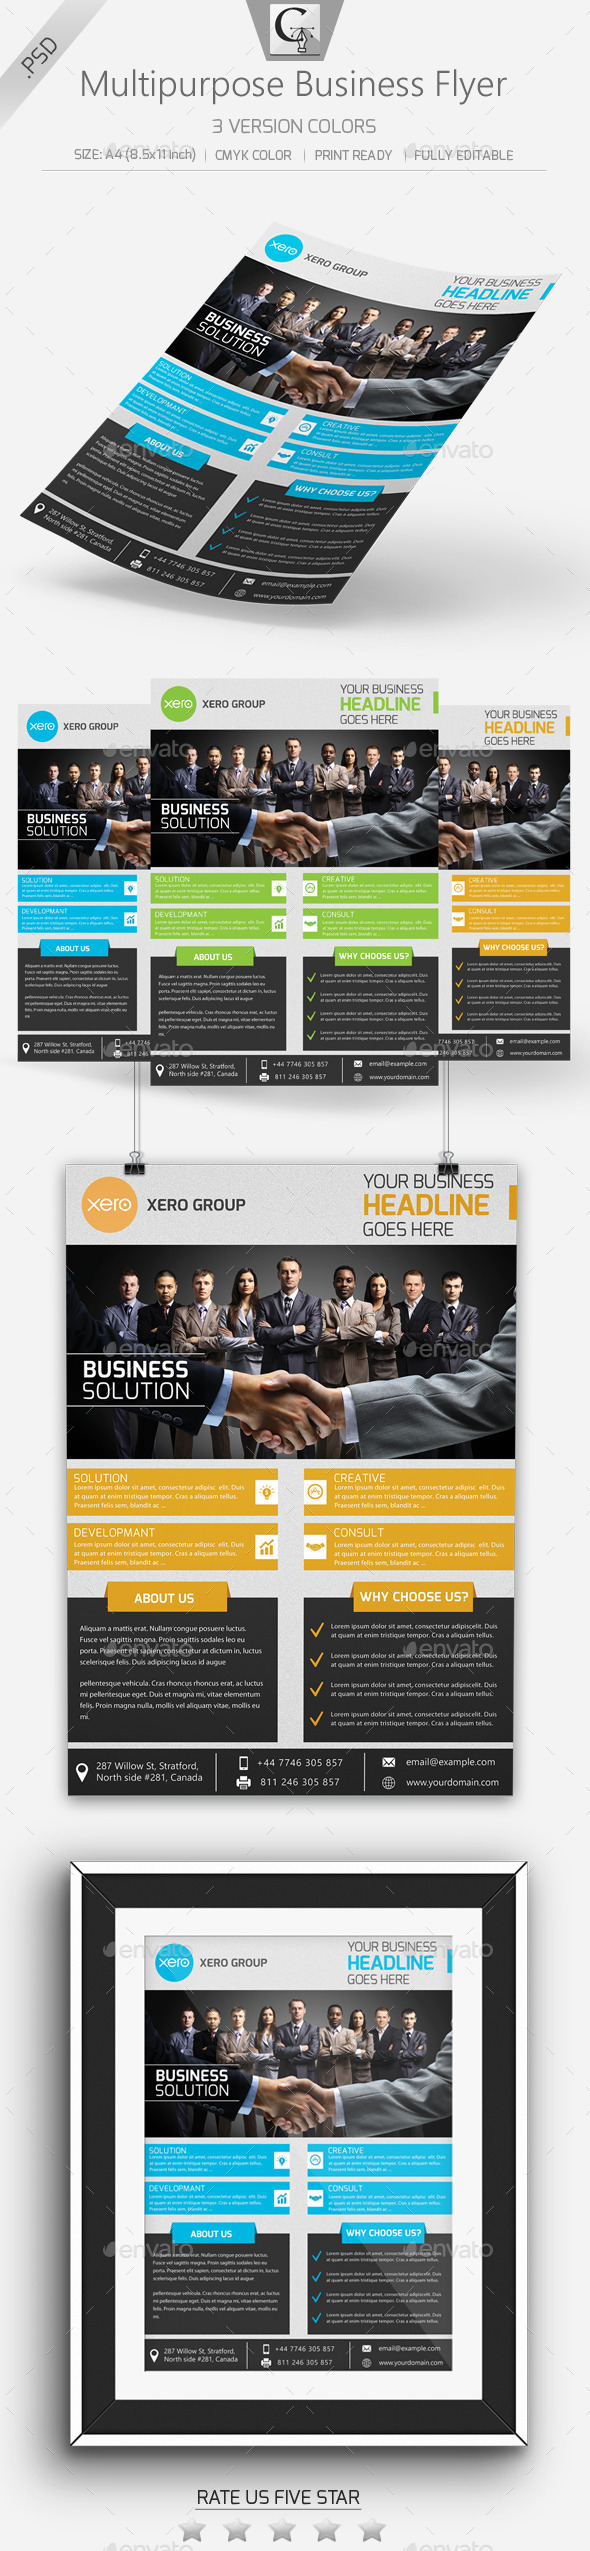 GraphicRiver Multipurpose Business Flyer 10950541